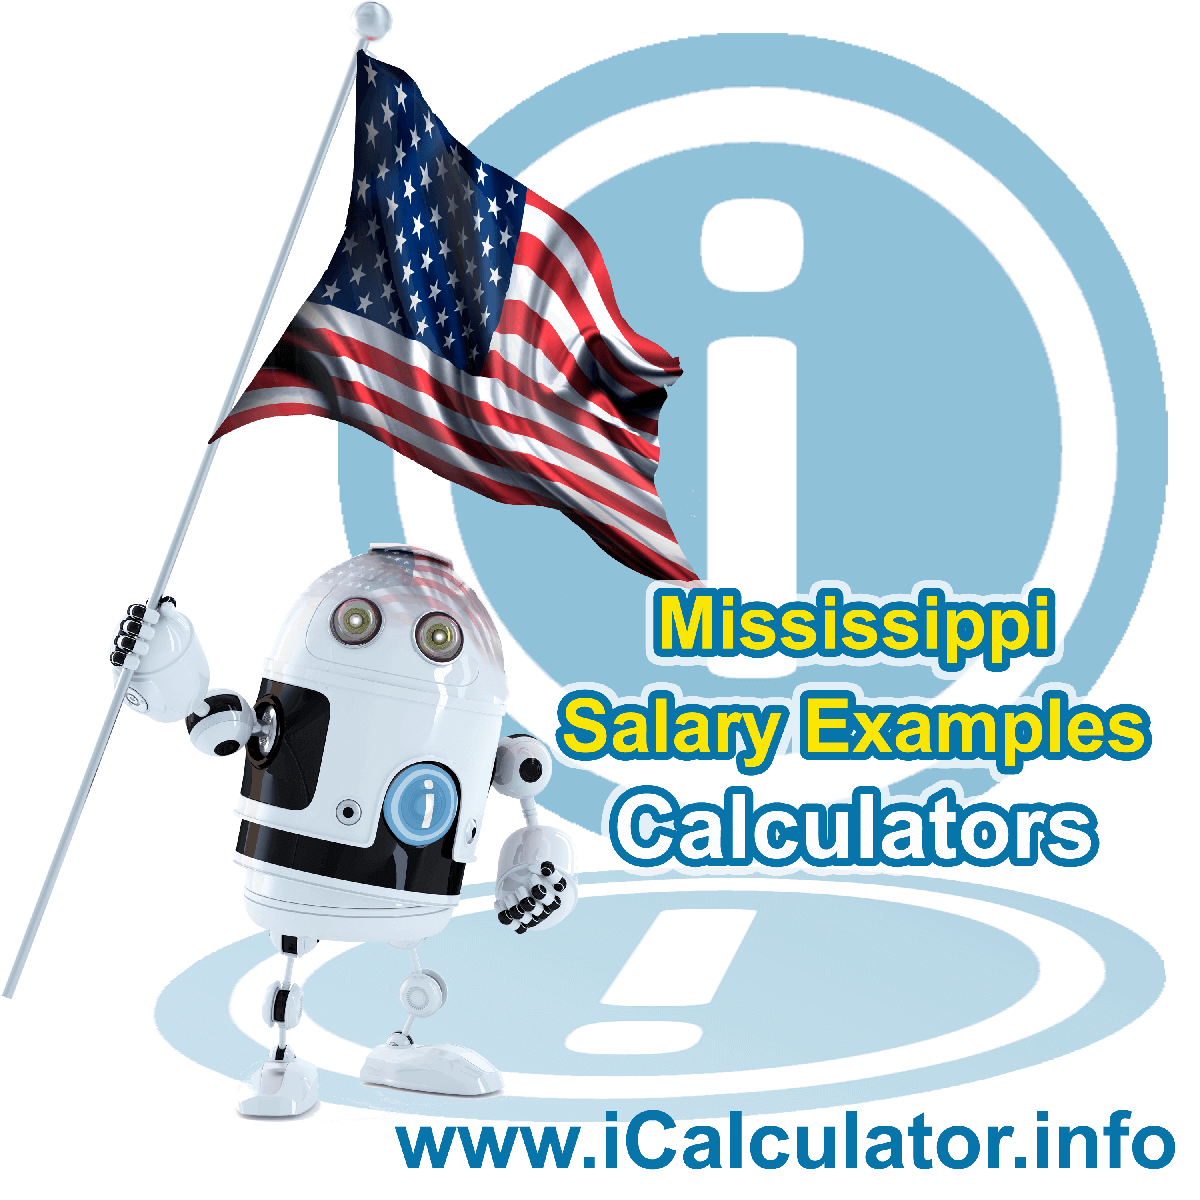 Mississippi Salary Example for $250.00 in 2020 | iCalculator | $250.00 salary example for employee and employer paying Mississippi State tincome taxes. Detailed salary after tax calculation including Mississippi State Tax, Federal State Tax, Medicare Deductions, Social Security, Capital Gains and other income tax and salary deductions complete with supporting Mississippi state tax tables